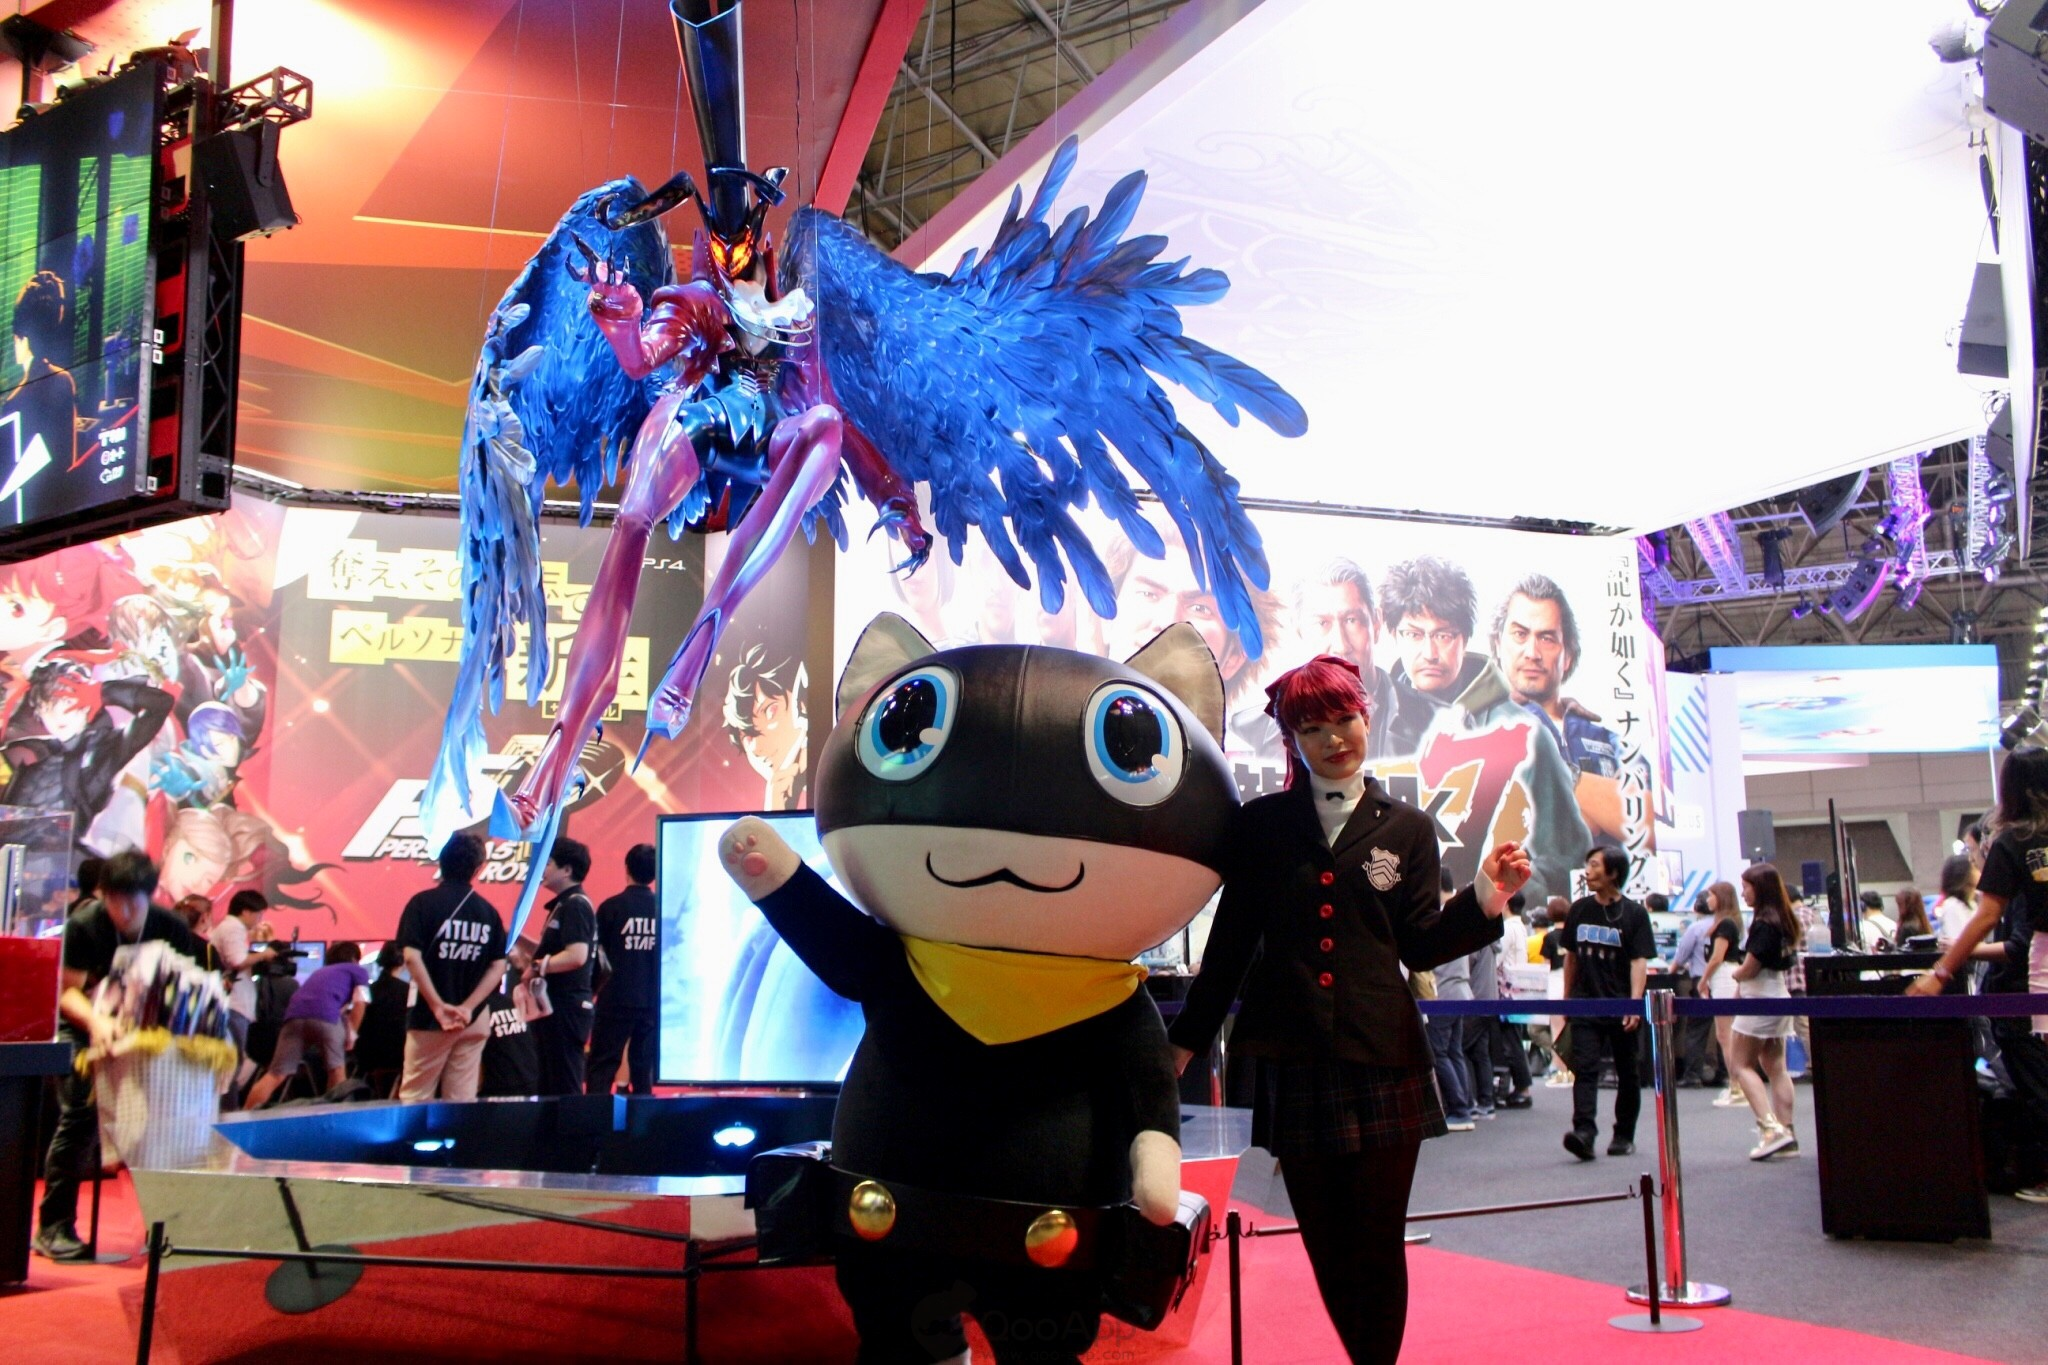 Sneak Peak at Persona 5 The Royal Playable Demo at TGS2019